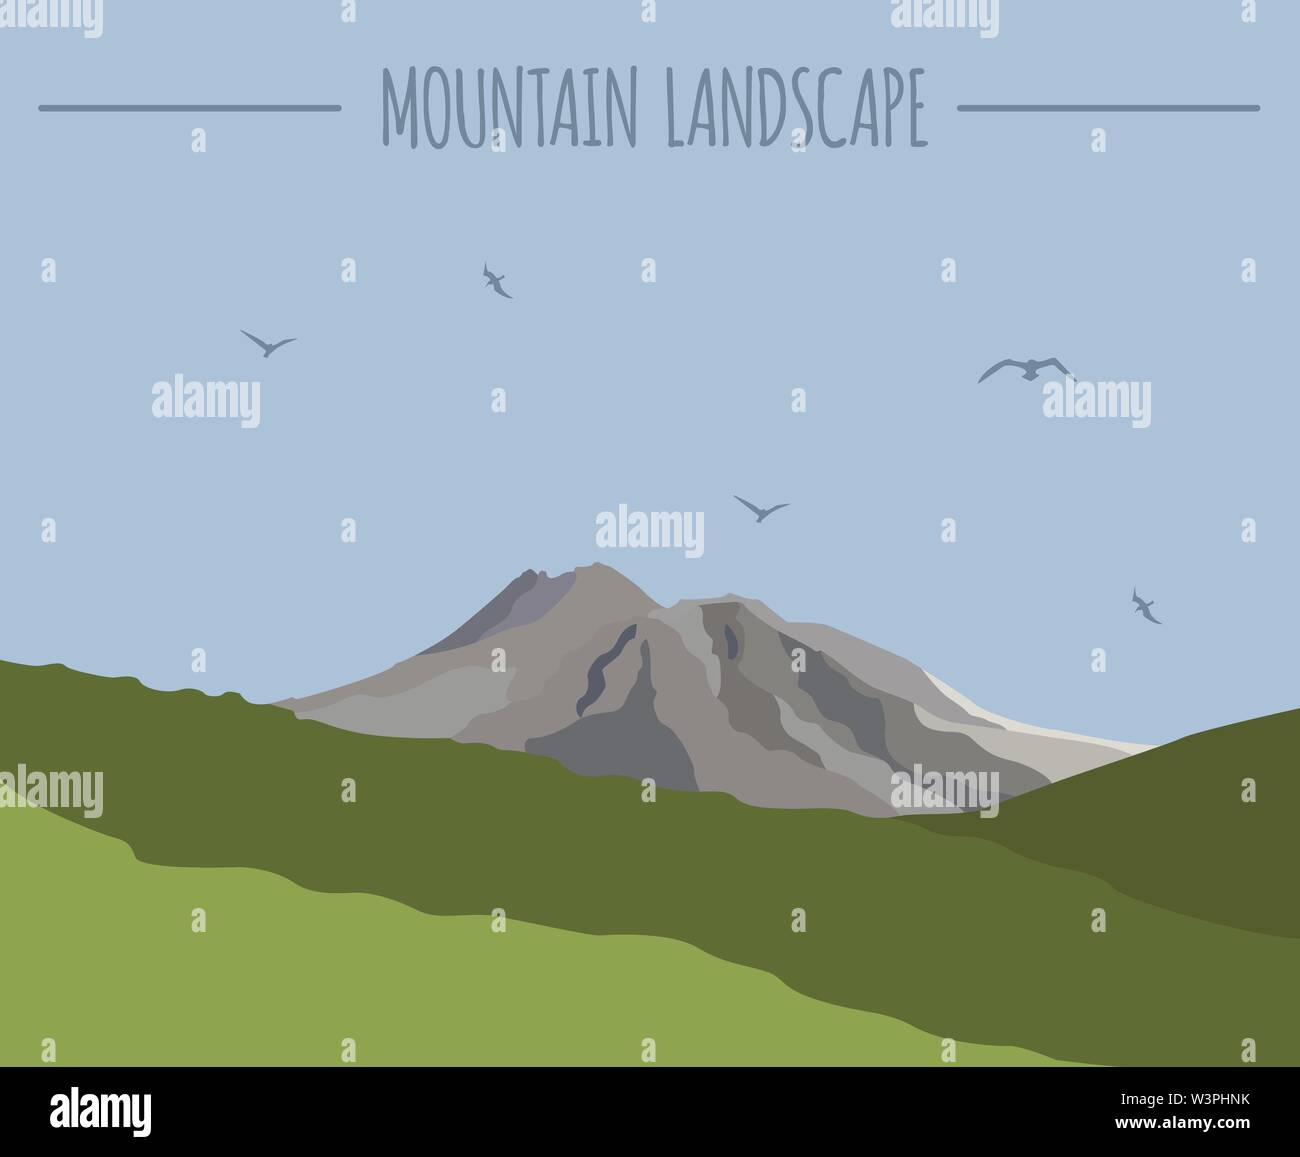 Mountain landscape graphic template. Vector illustration - Stock Image